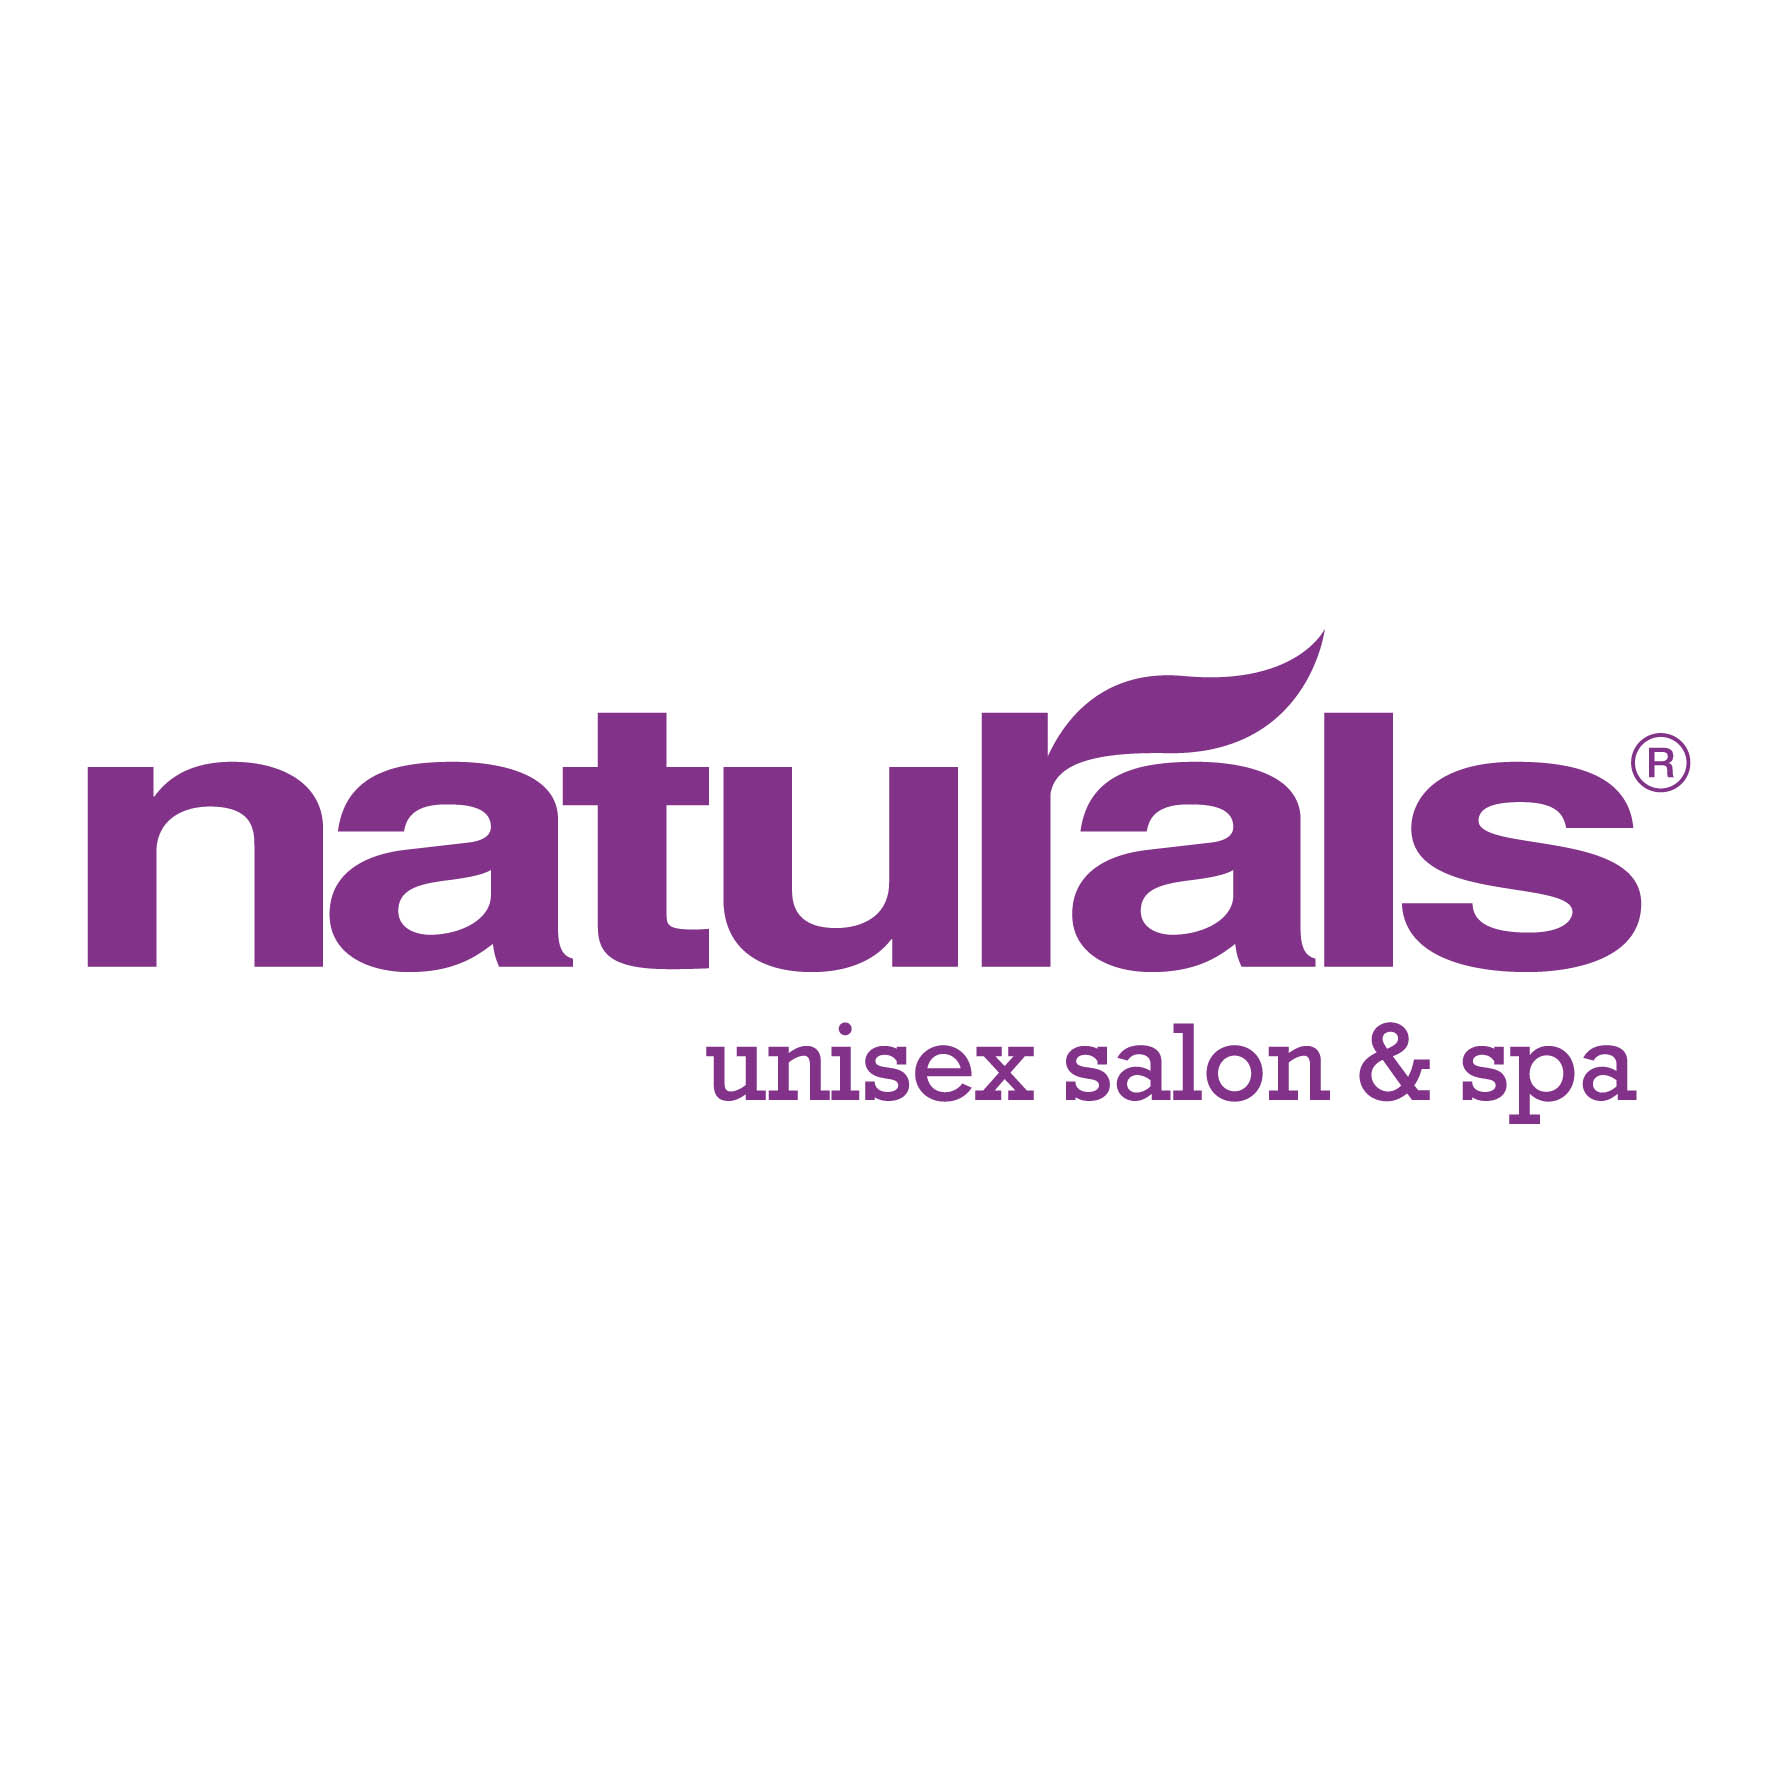 Naturals Family Salon Spa - Vignana Nagar - Bangalore Image